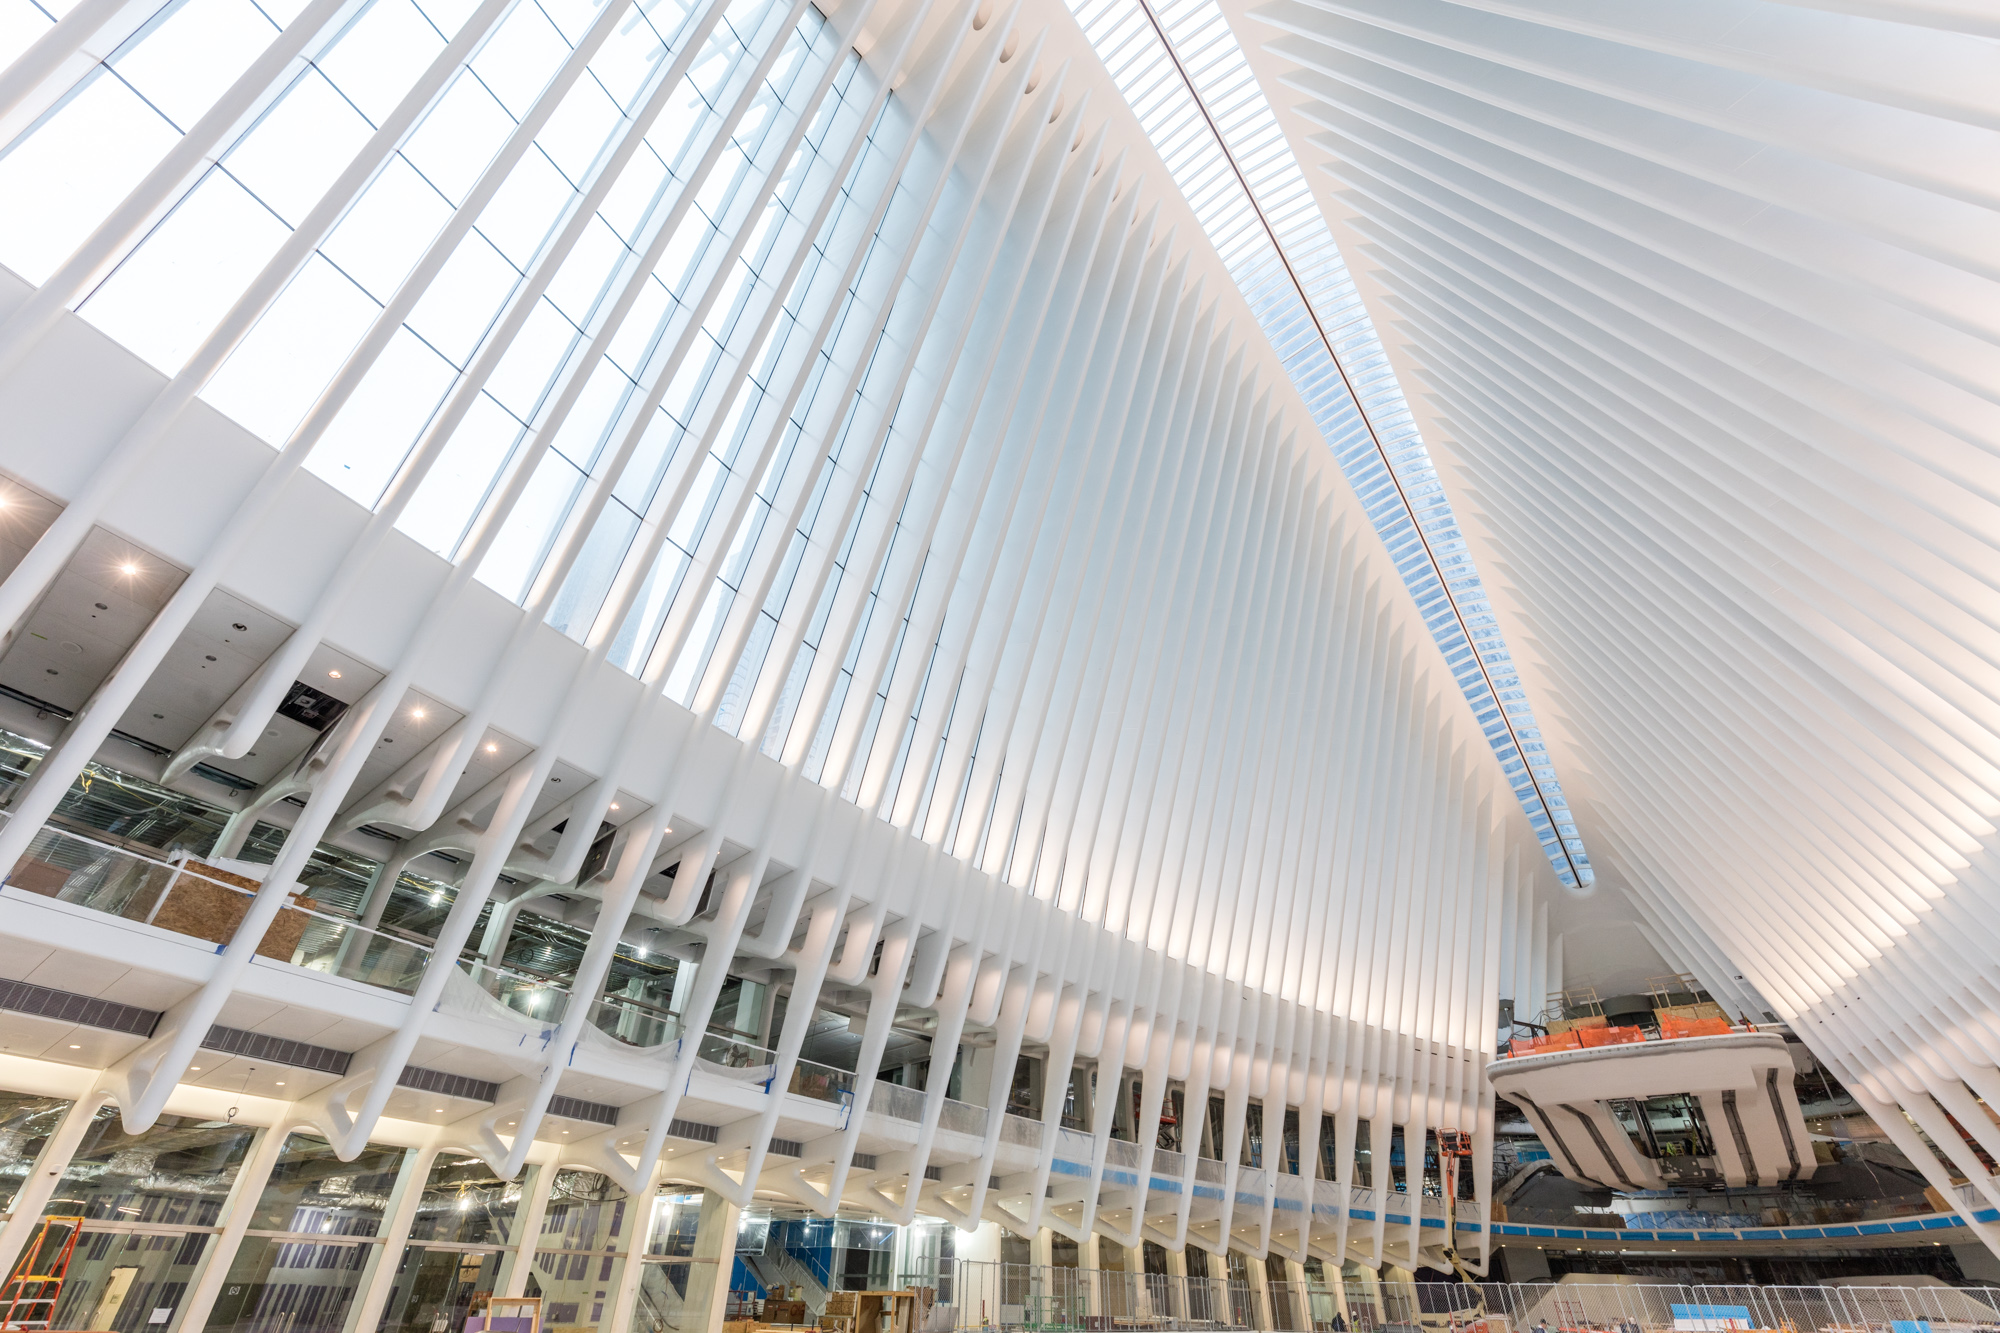 WTC Transportation Hub Opens Today to Mixed Reviews